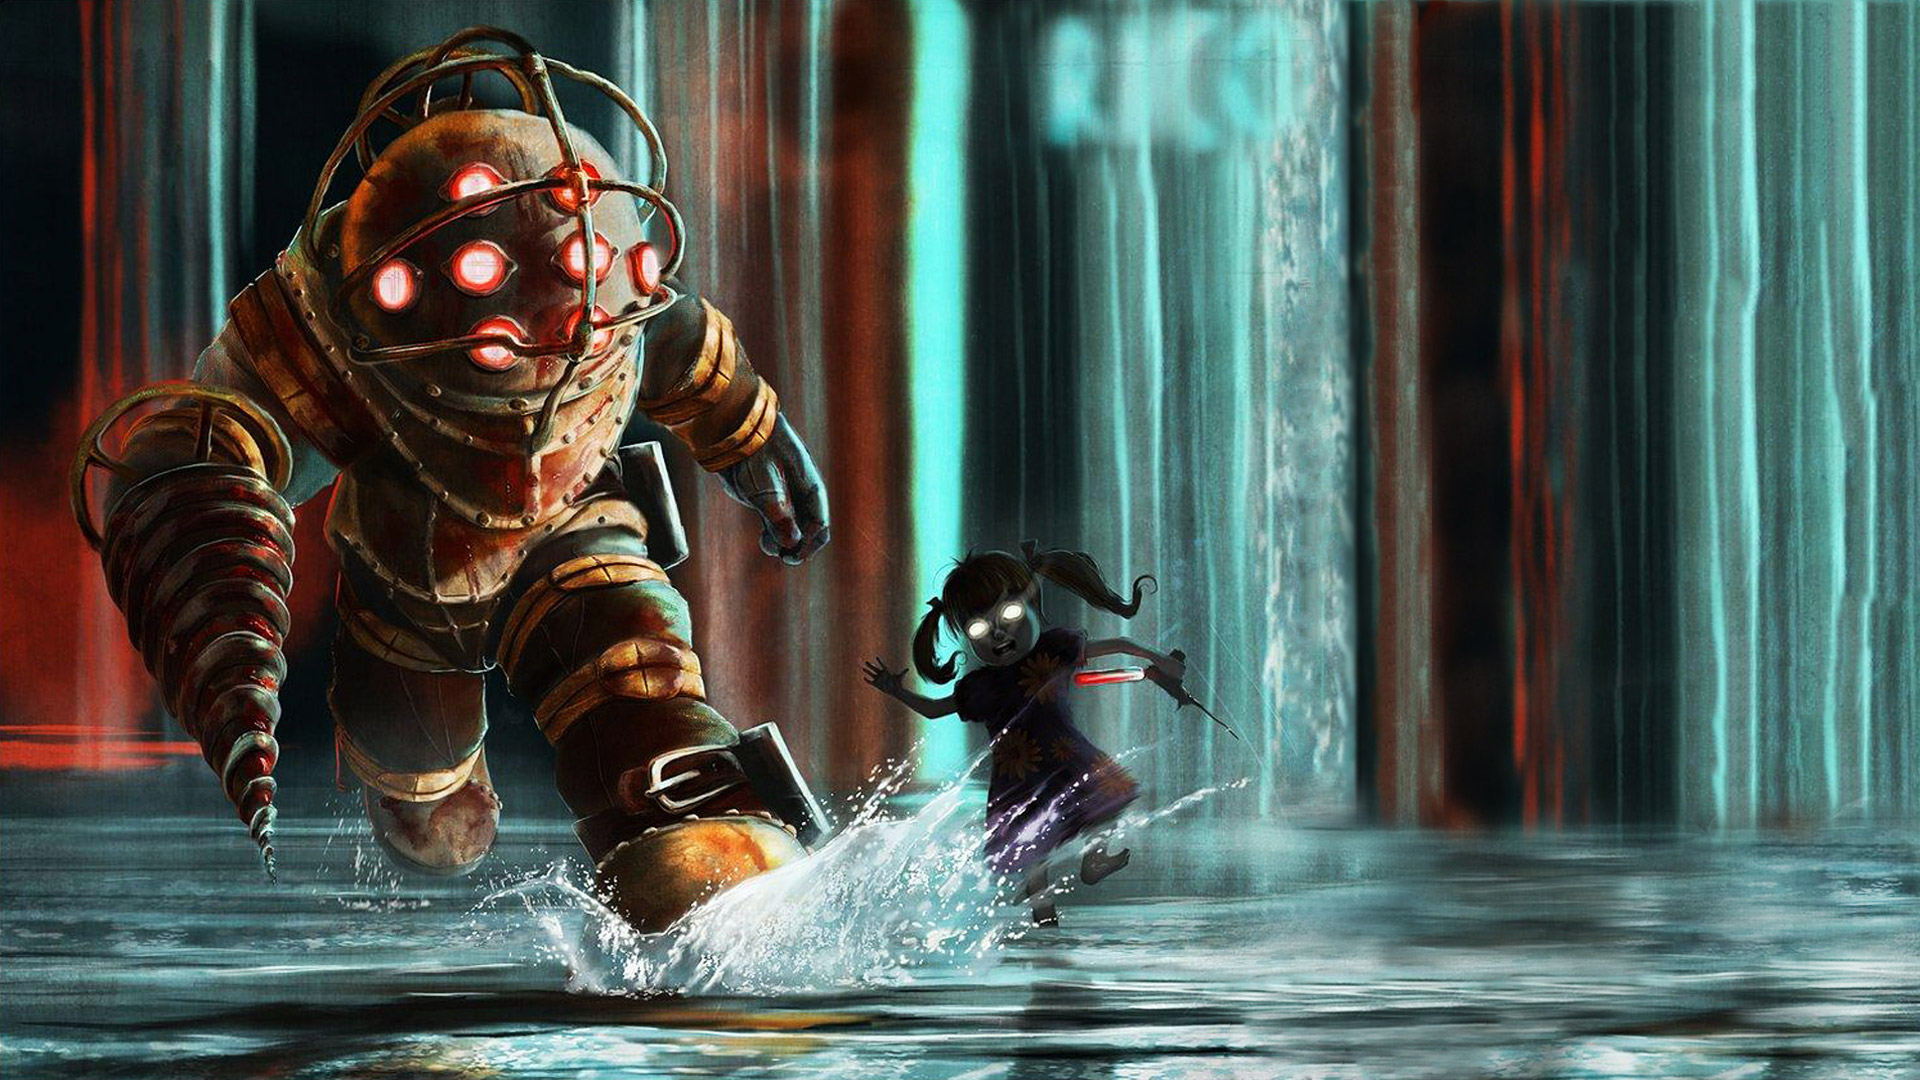 Bioshock Wallpaper 2